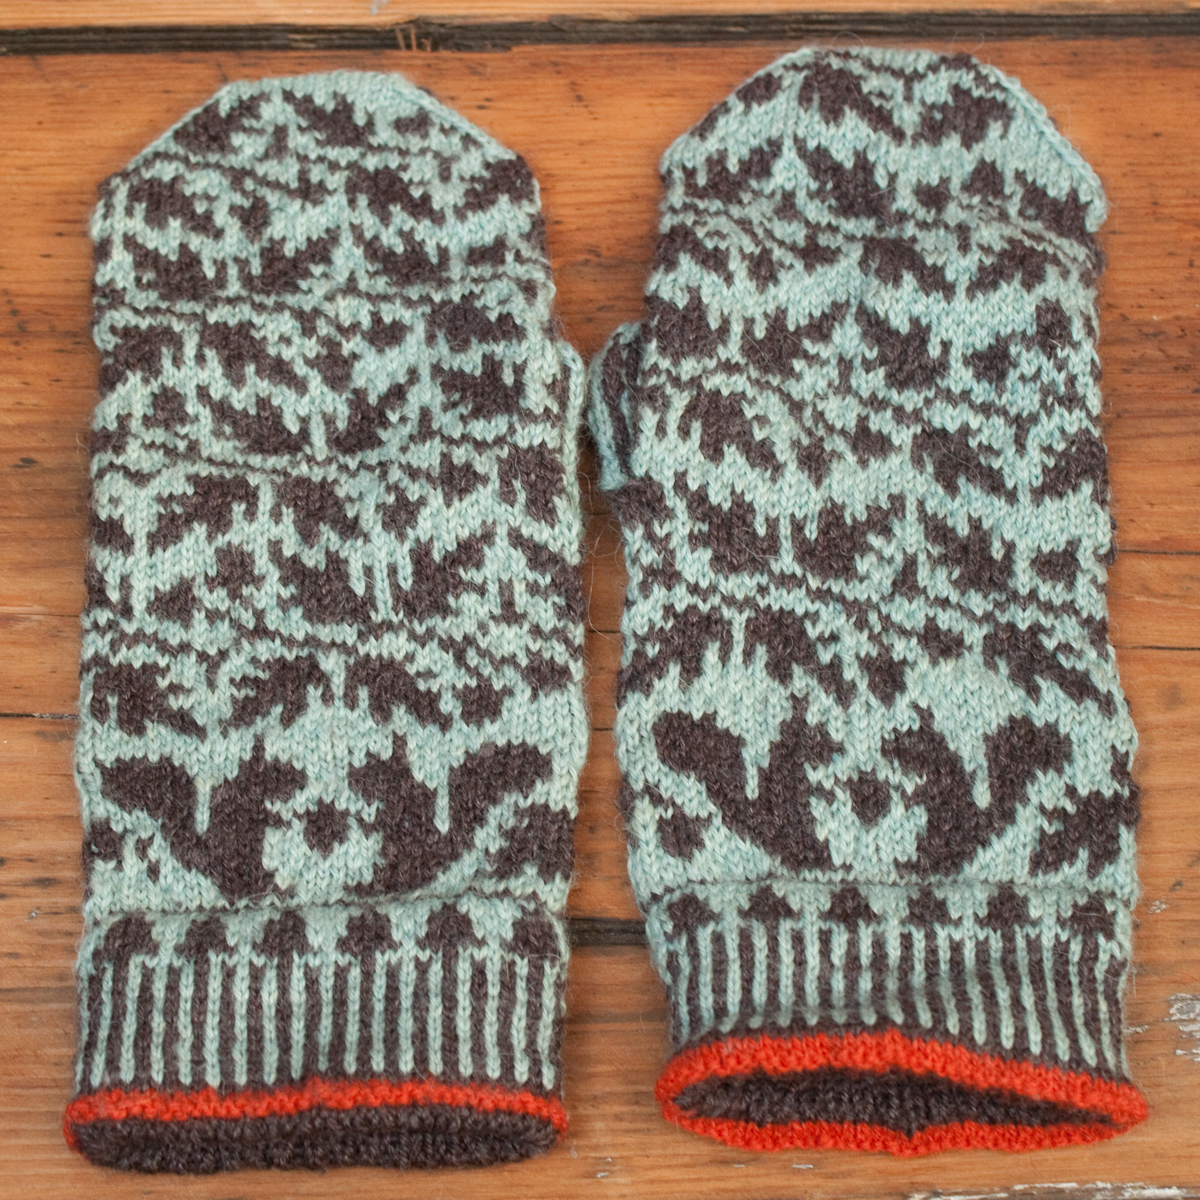 Fair Isle Patterns For Knitting : Pin by Ann Schatzinger on Fair isle knitting patterns Pinterest